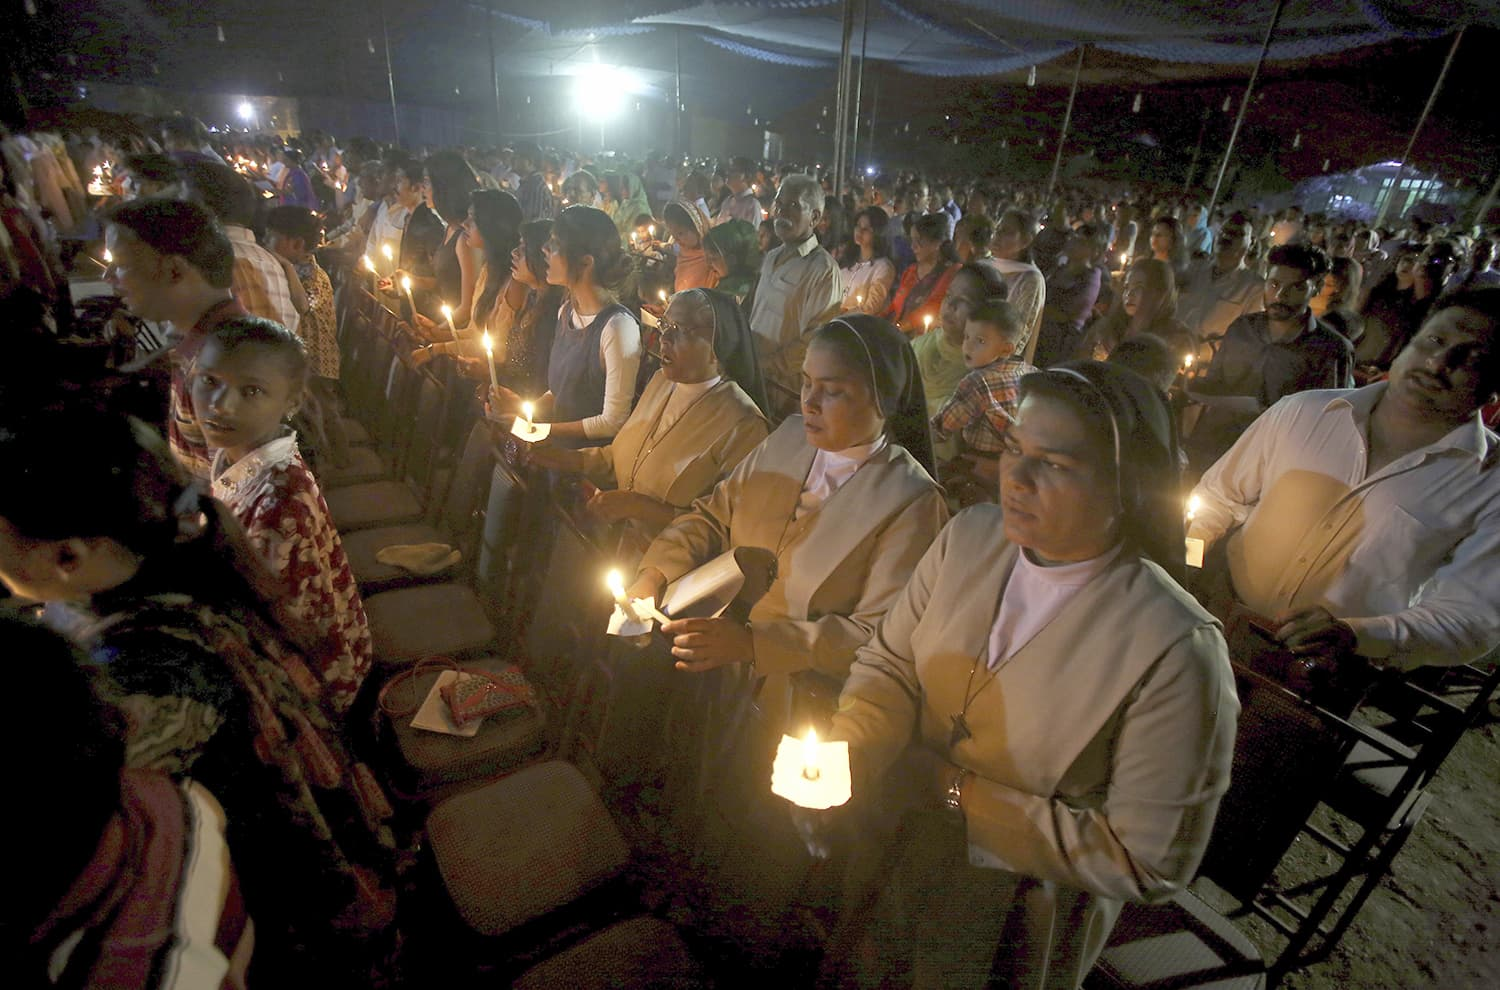 Christians hold candles while attending midnight Easter service at St. Patrick church in Karachi. —AP